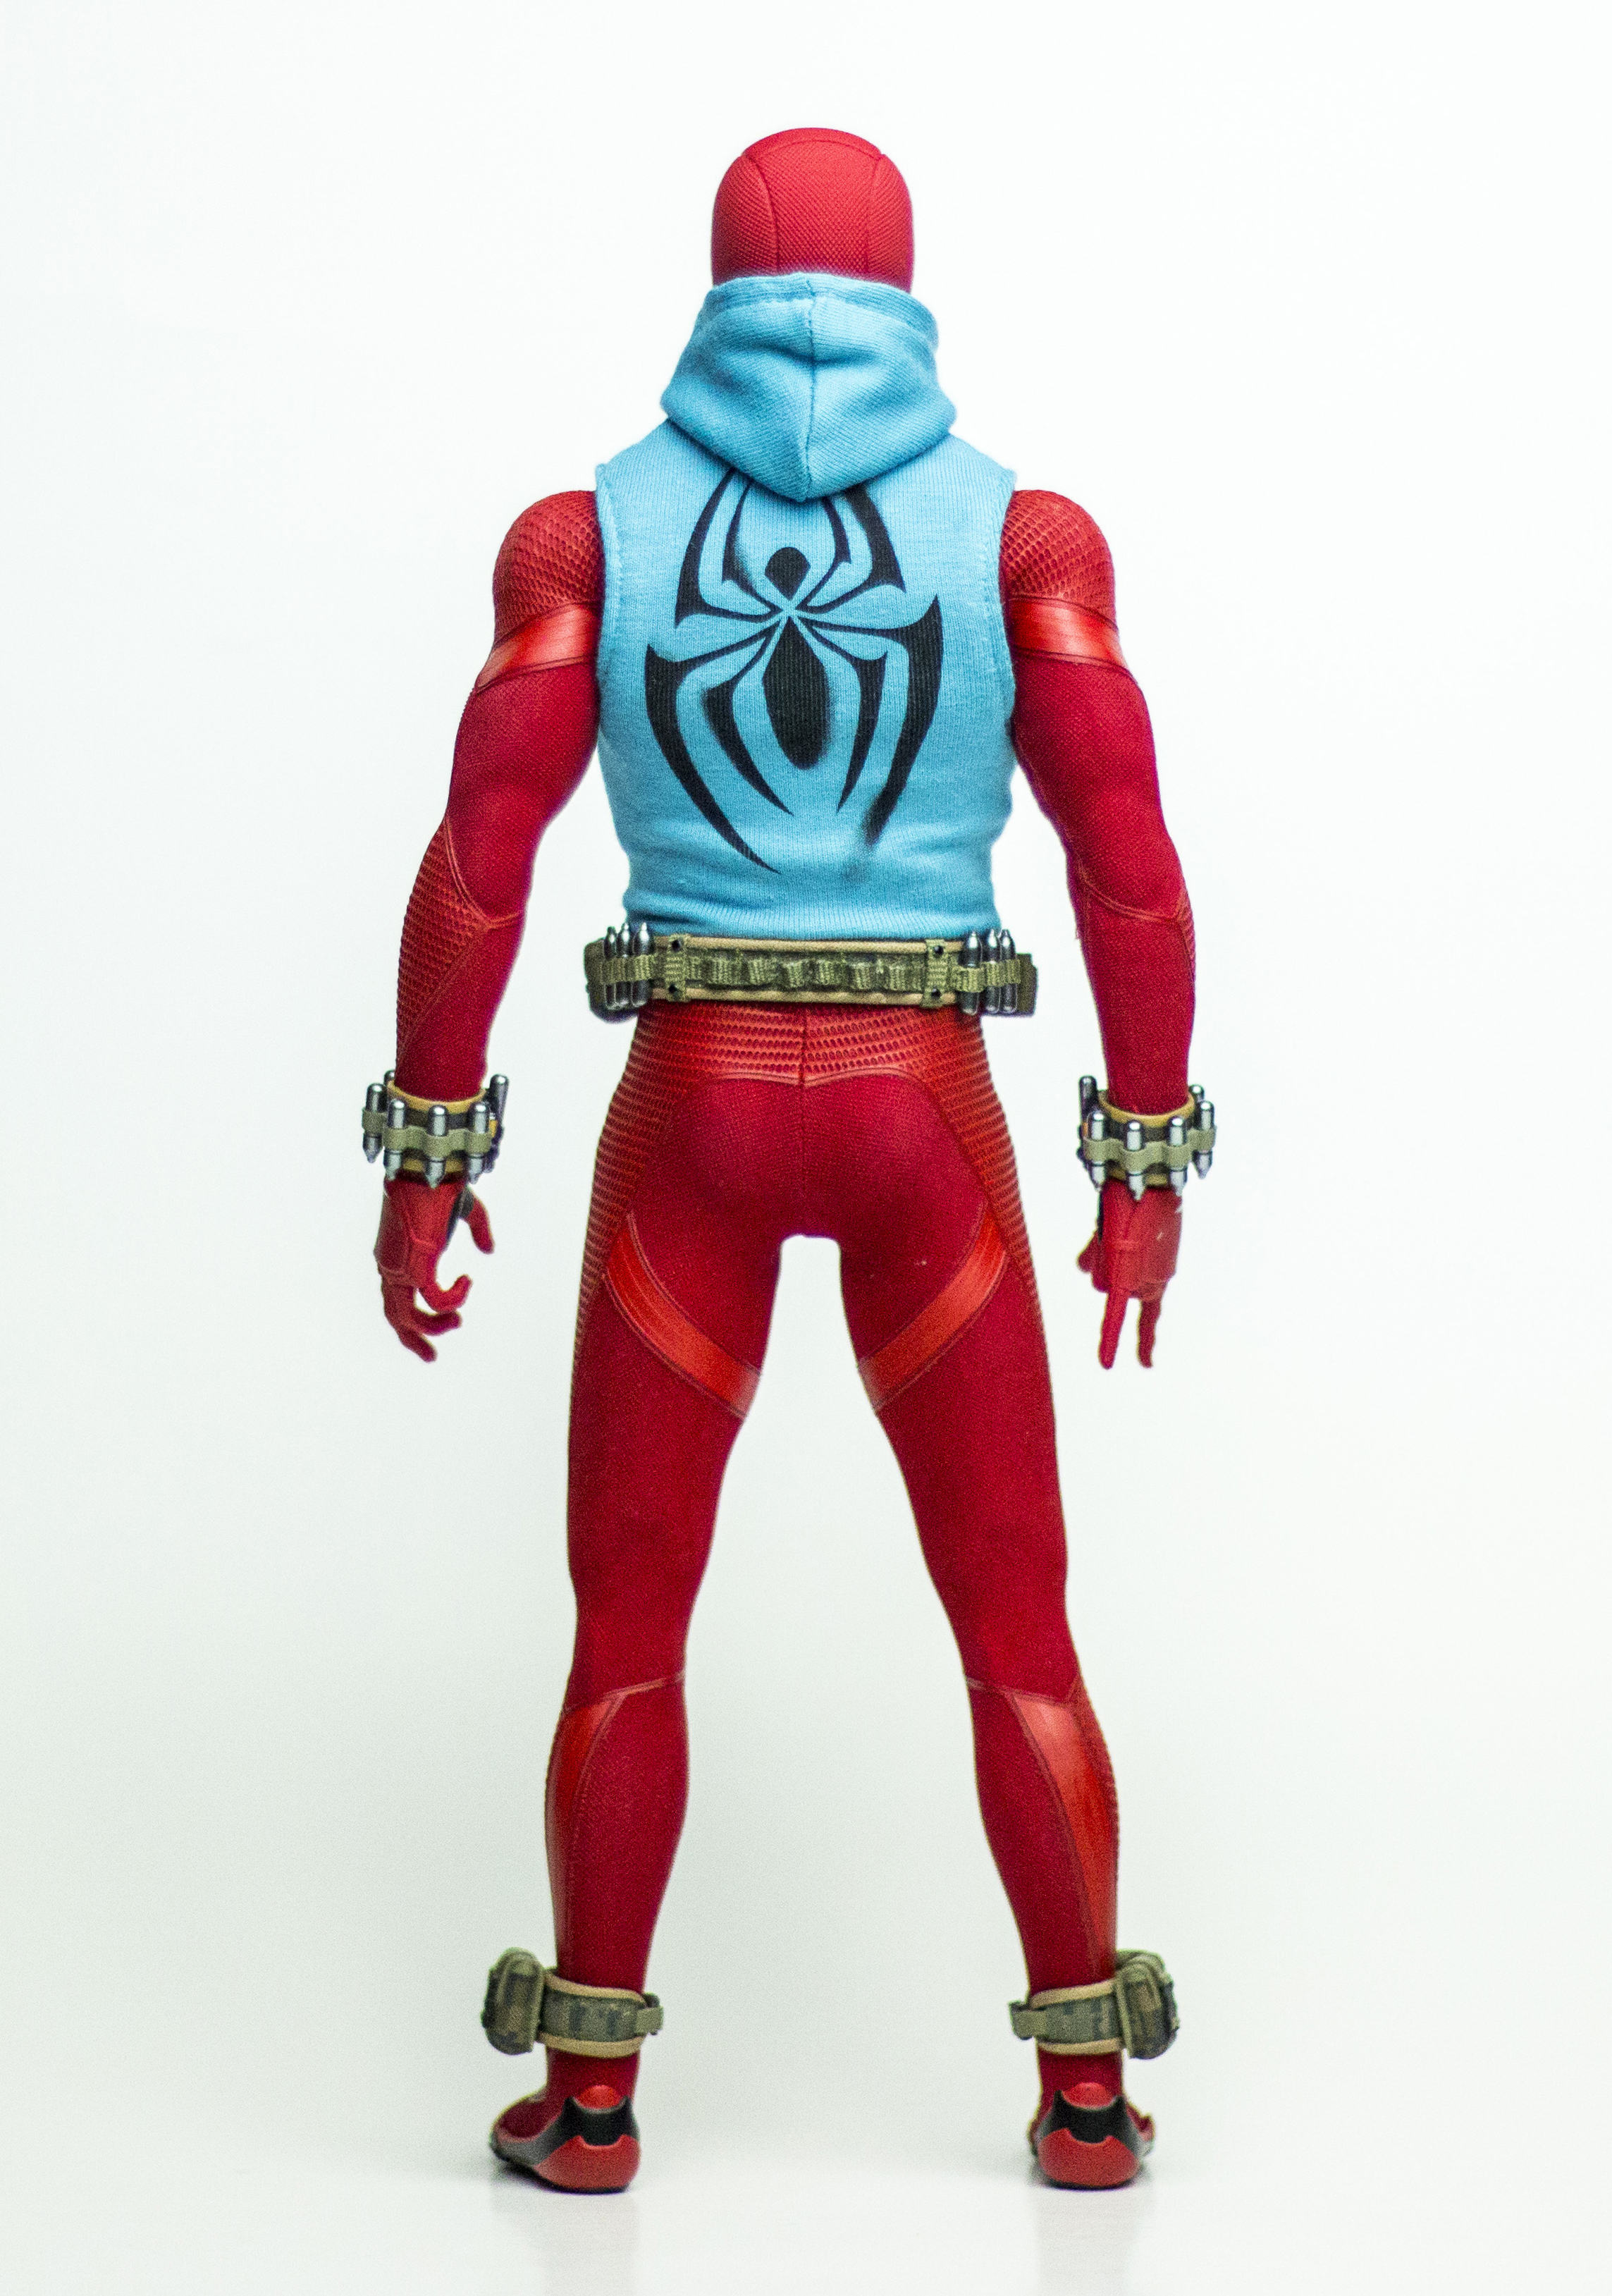 Long Neck Joint Redman Action Figures Lost Man 1//6 Scale